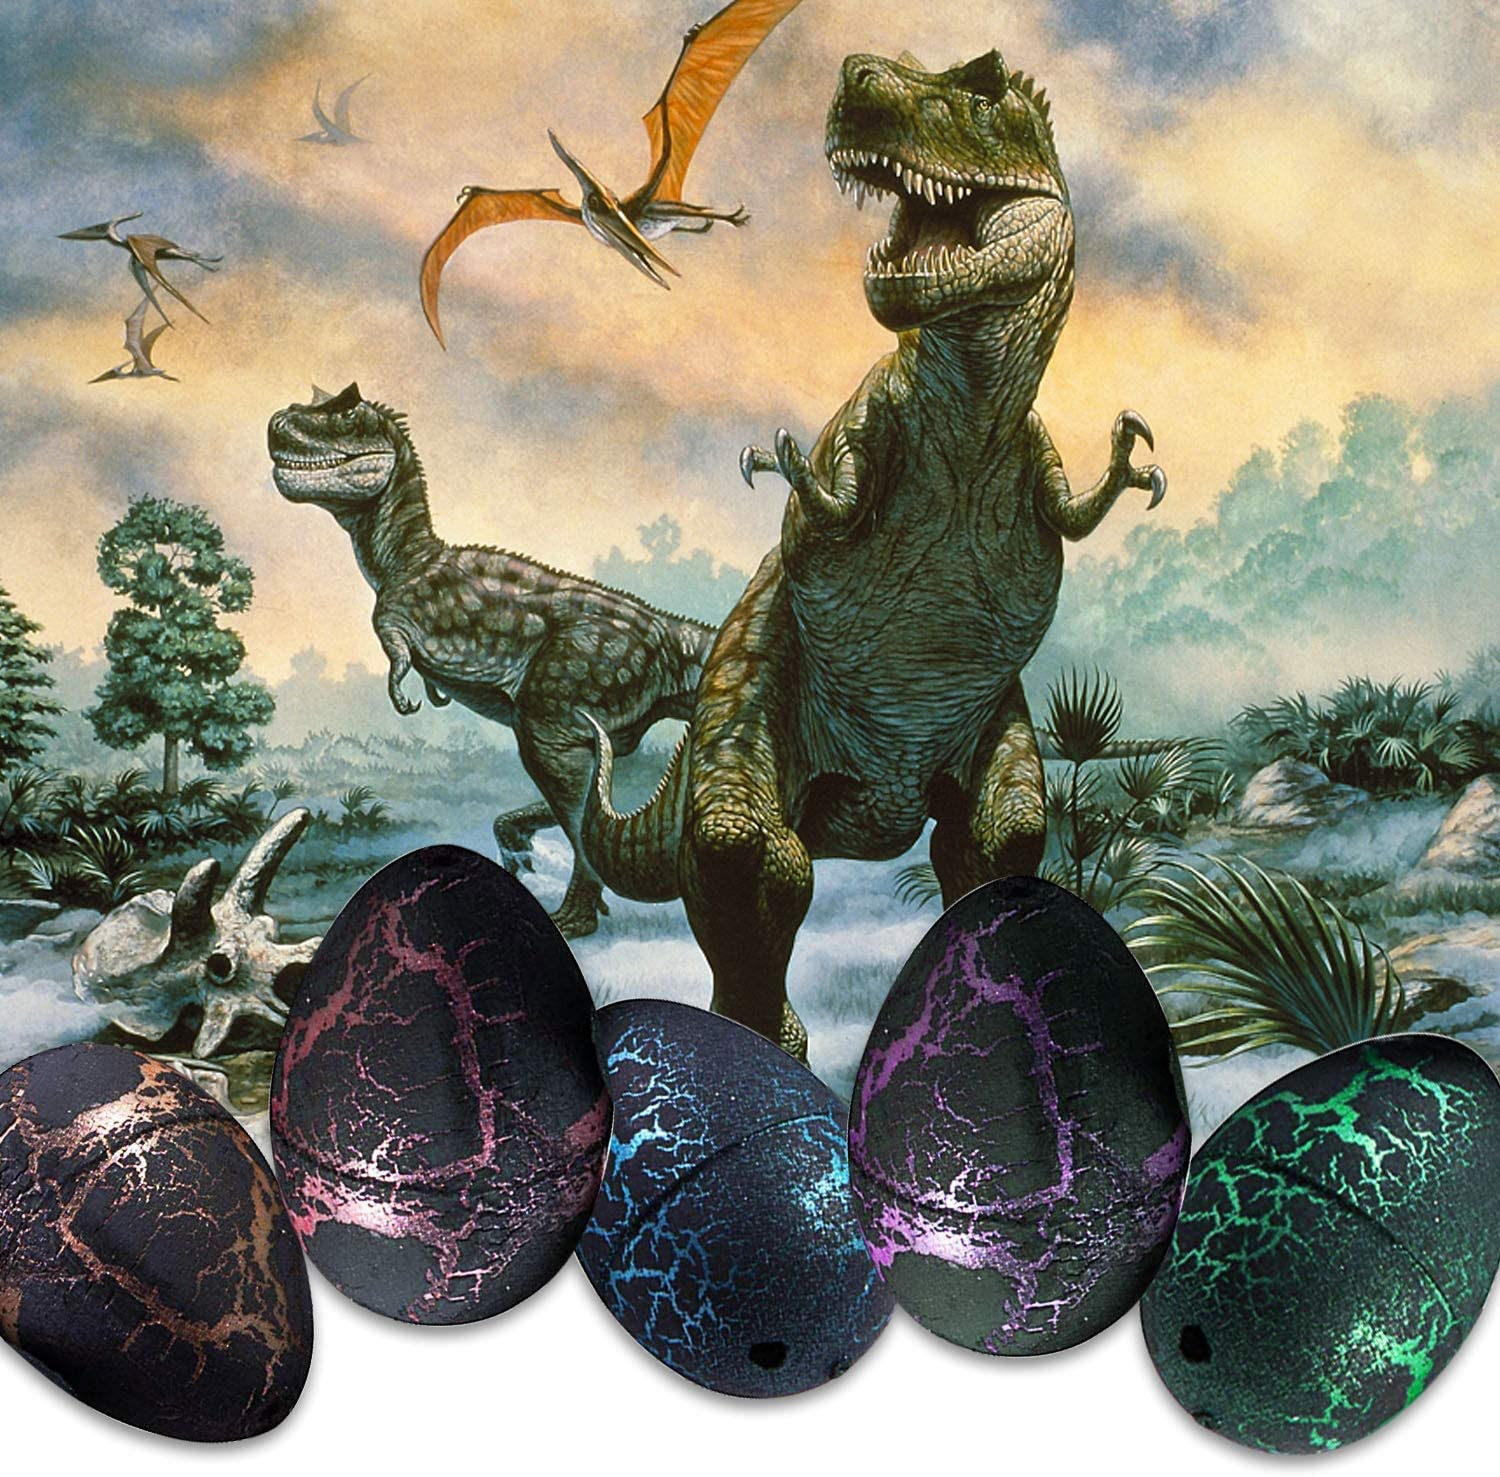 Kids Magic Water Hatching Dinosaur Egg Toy Inflatable Growing Eggs #1 Biunixin Educational Novelty Toys